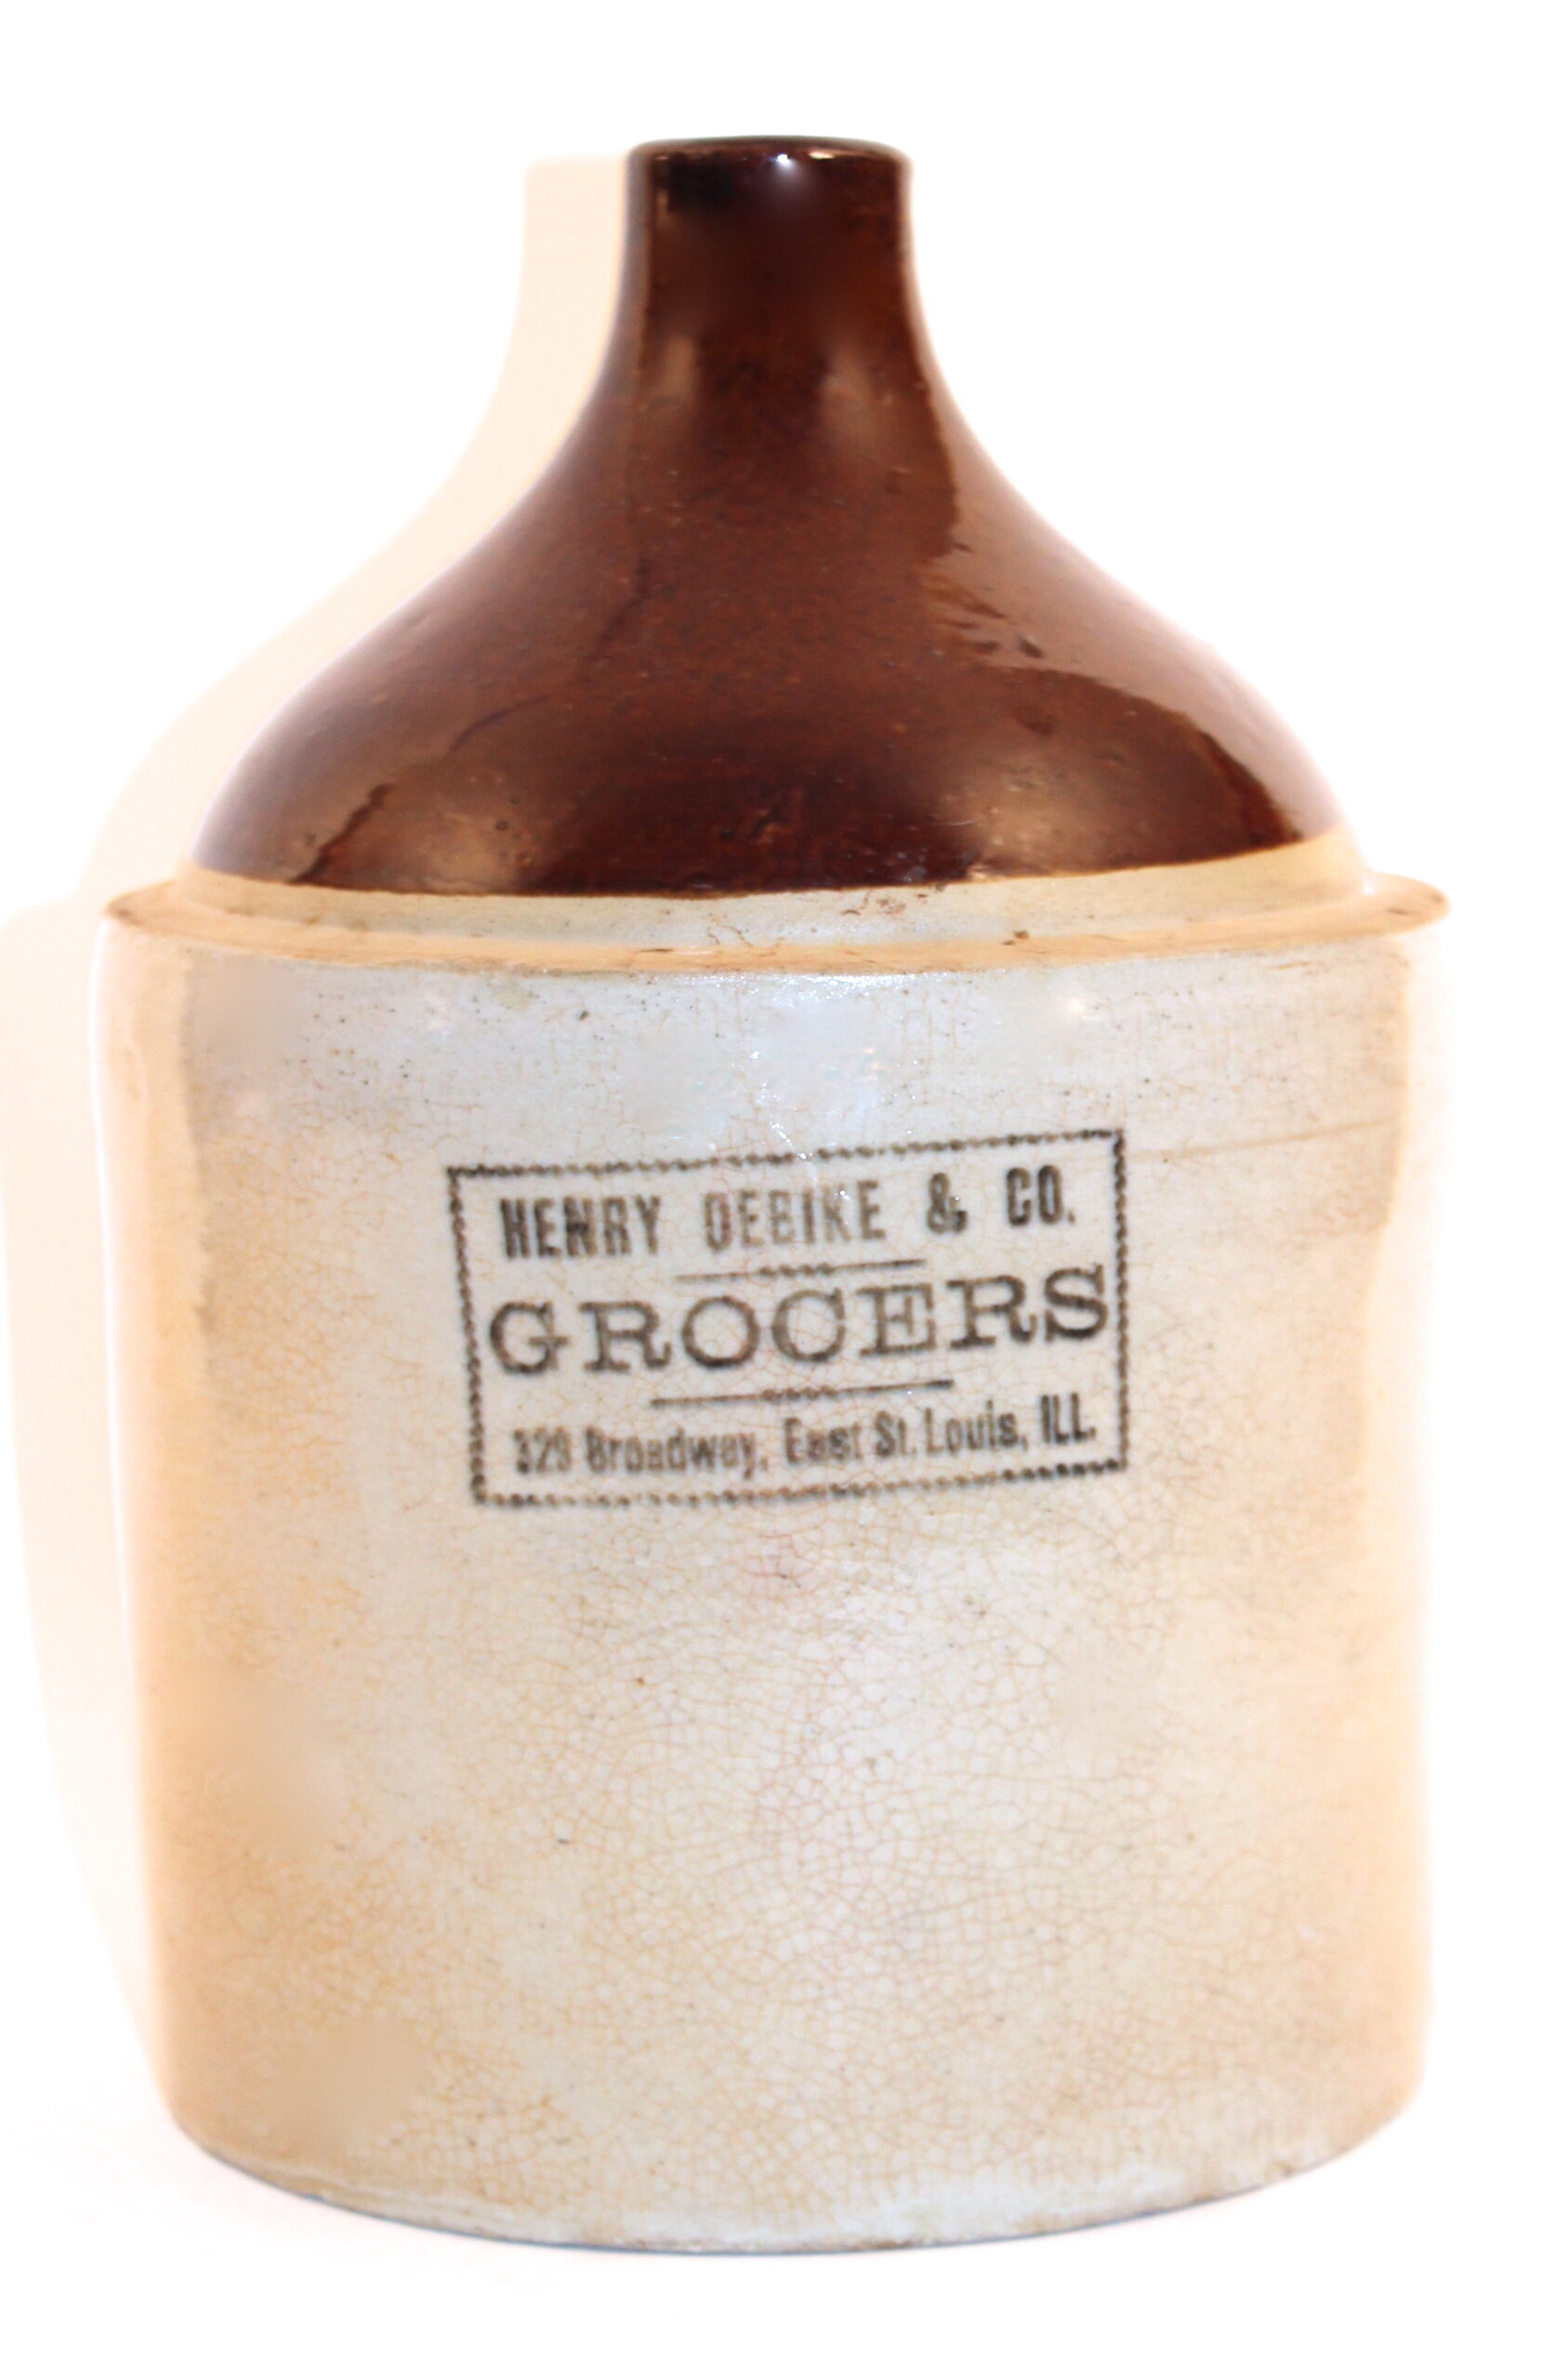 Henry Oebike & Co Grocers Whiskey Jug, E. St. Louis, IL. Circa 1900